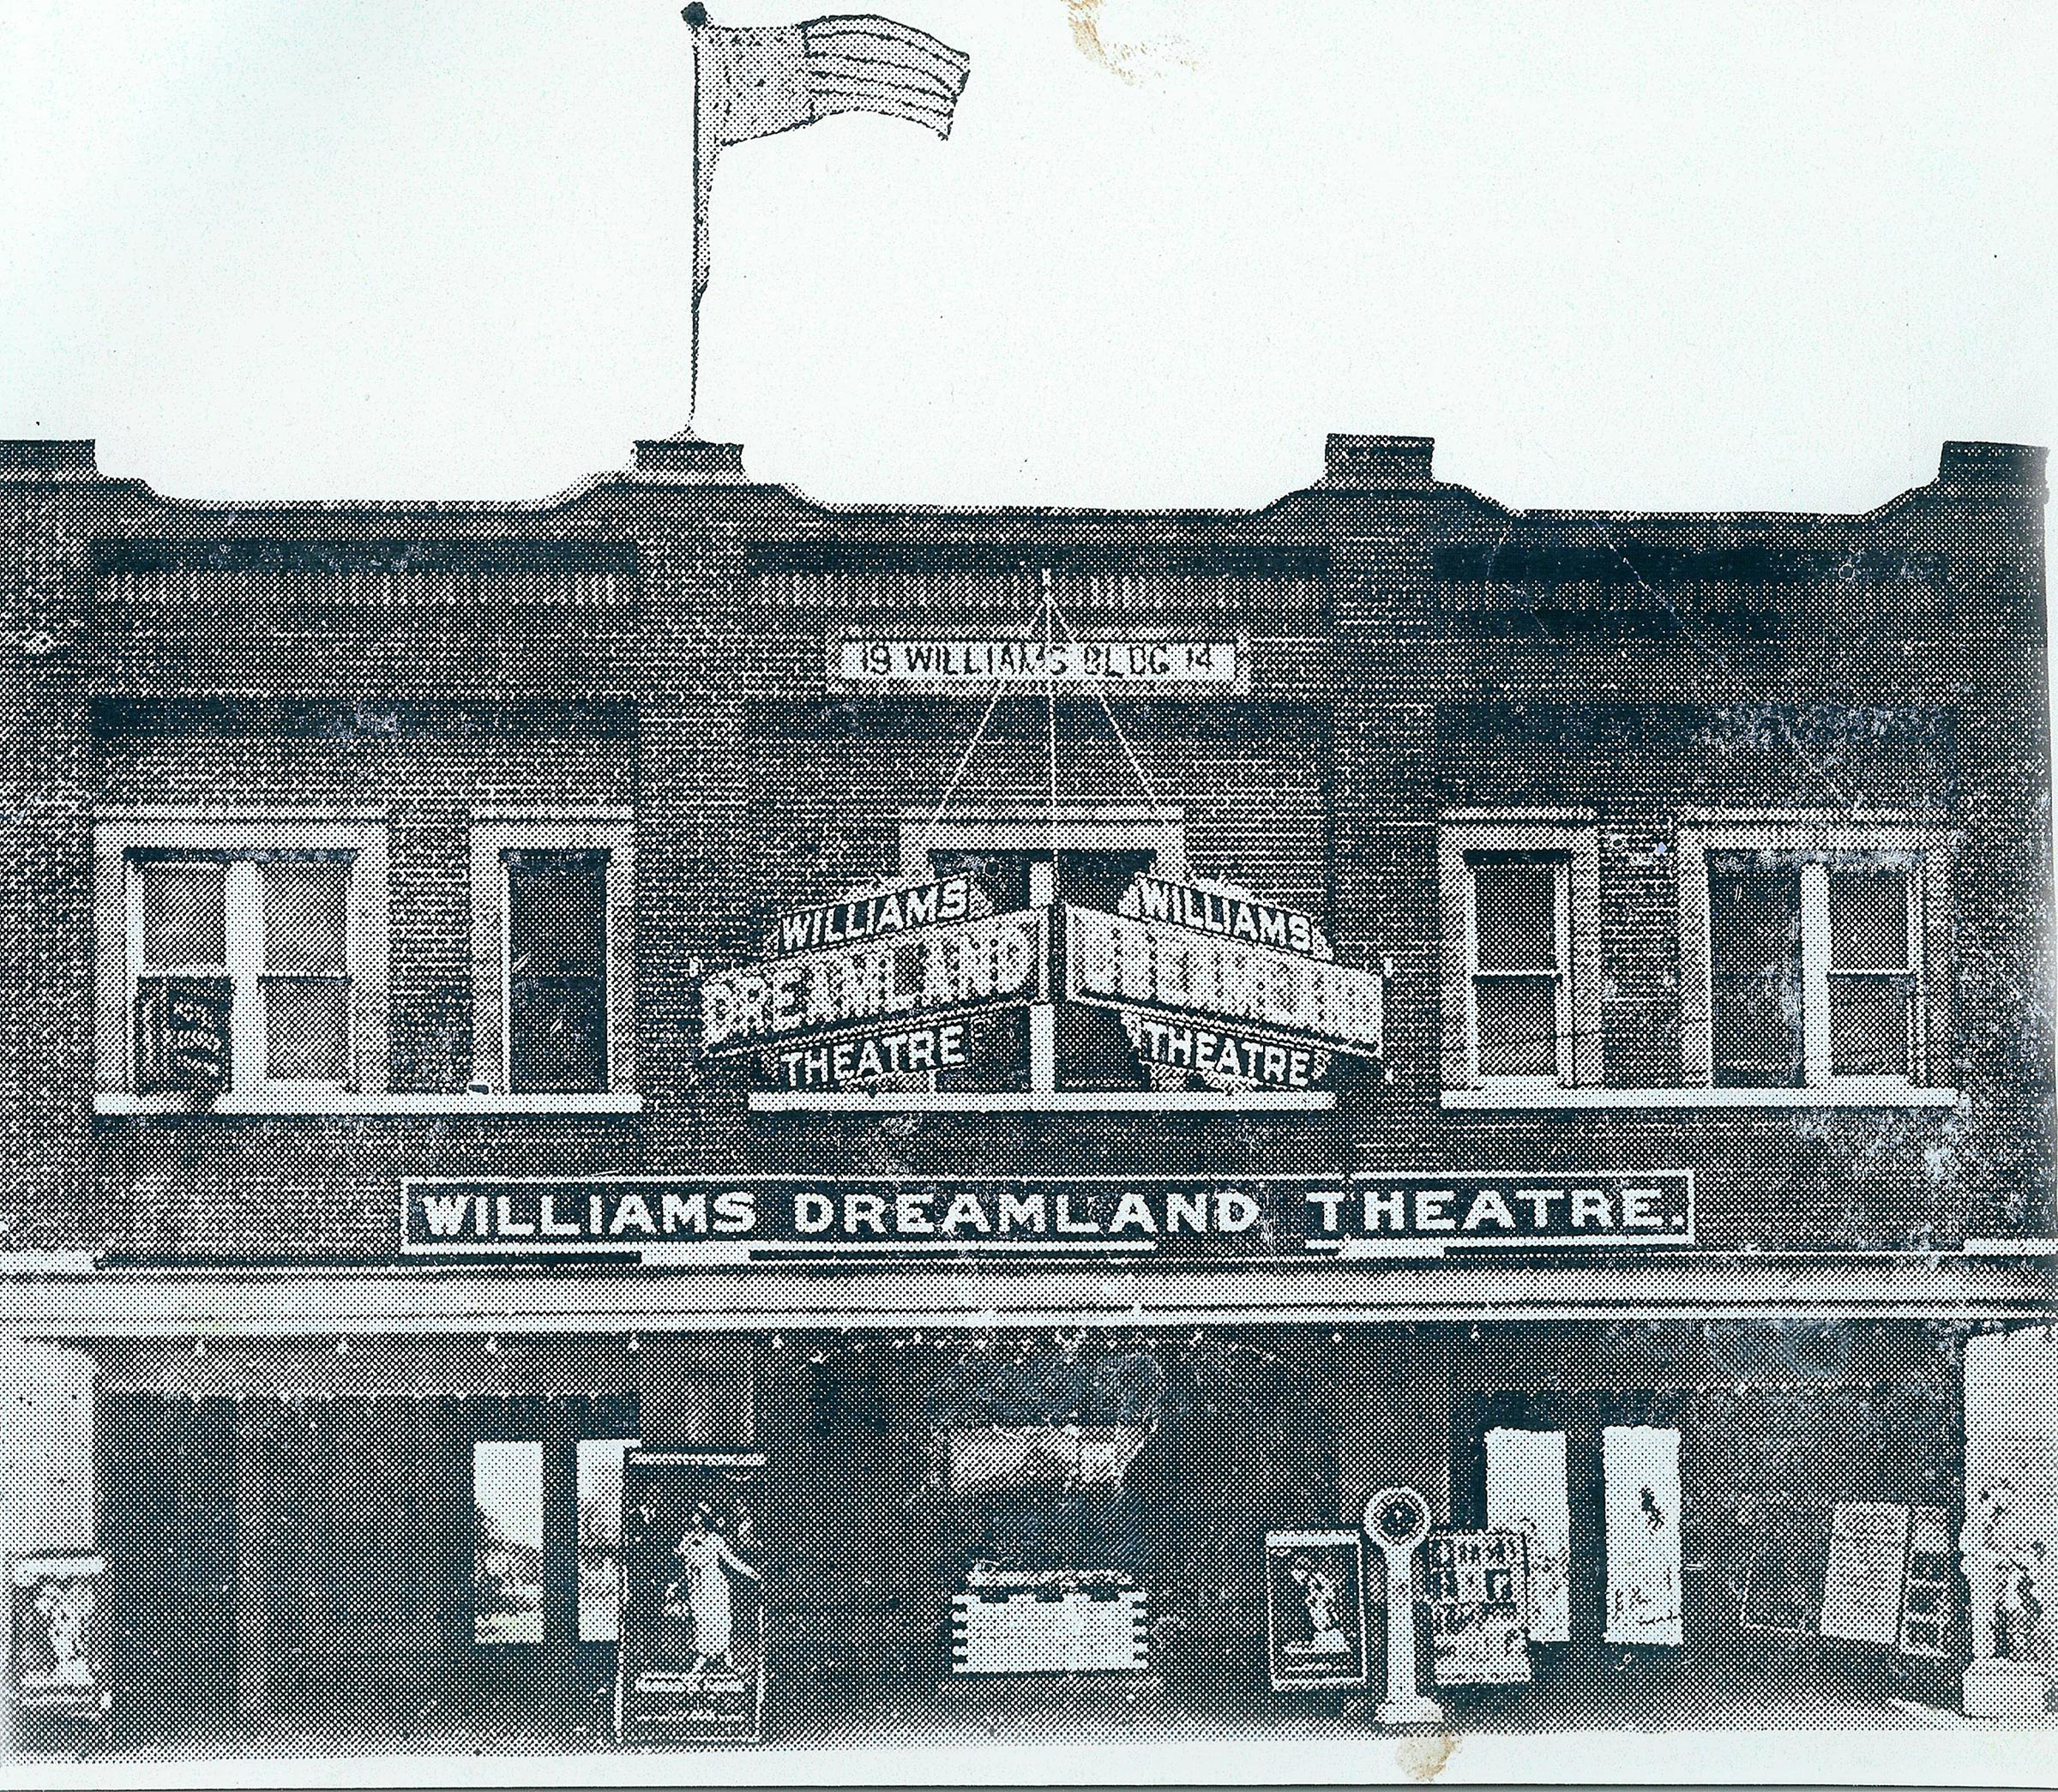 The Williams Dreamland Theatre in Tulsa, Okla., before it was destroyed during the Tulsa Race Massacre.